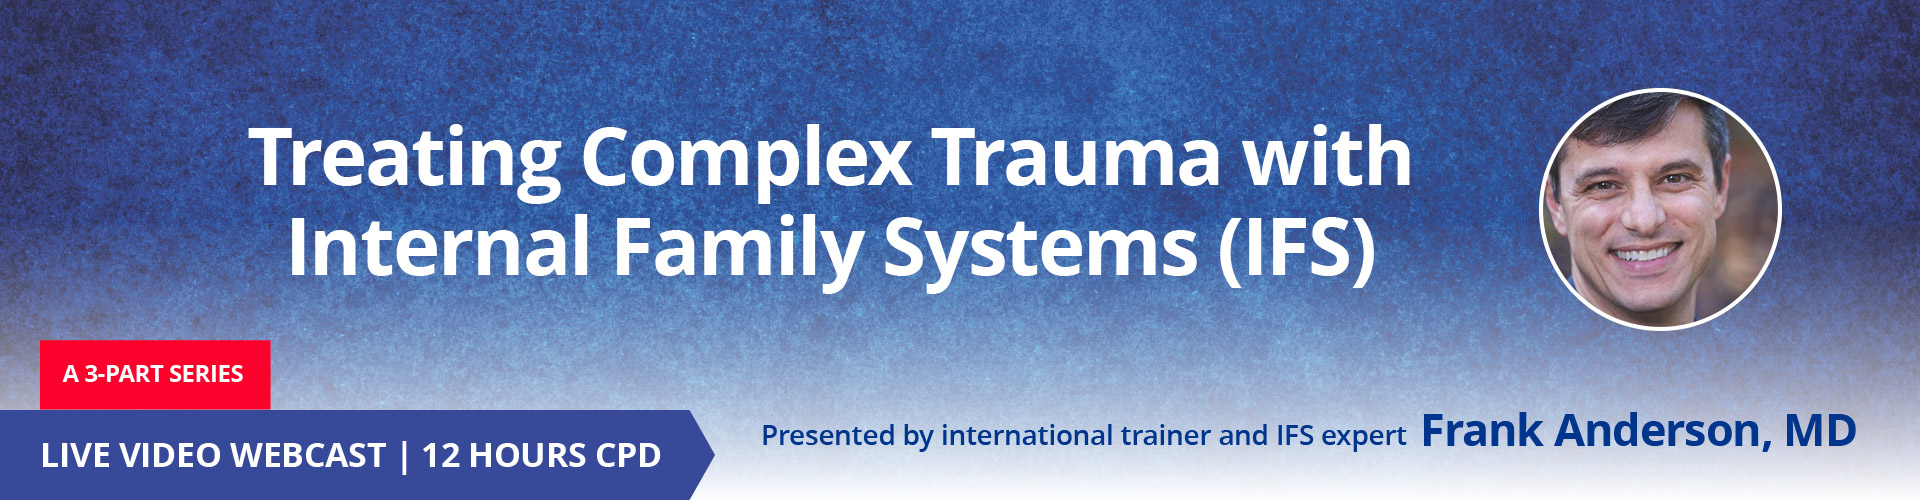 IFS Treating Complex Trauma